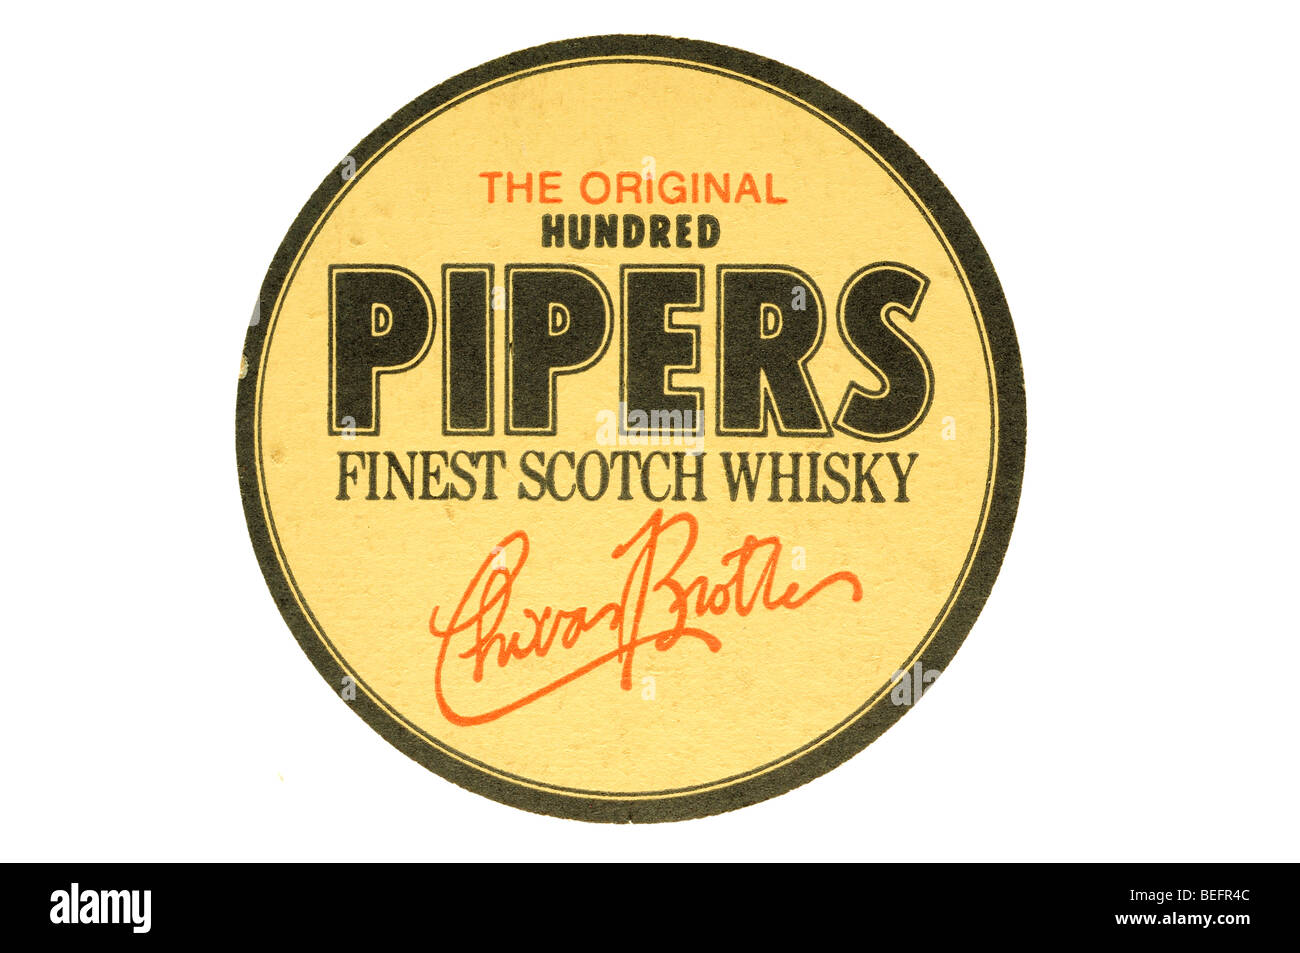 the original hundred pipers finest scotch whisky - Stock Image